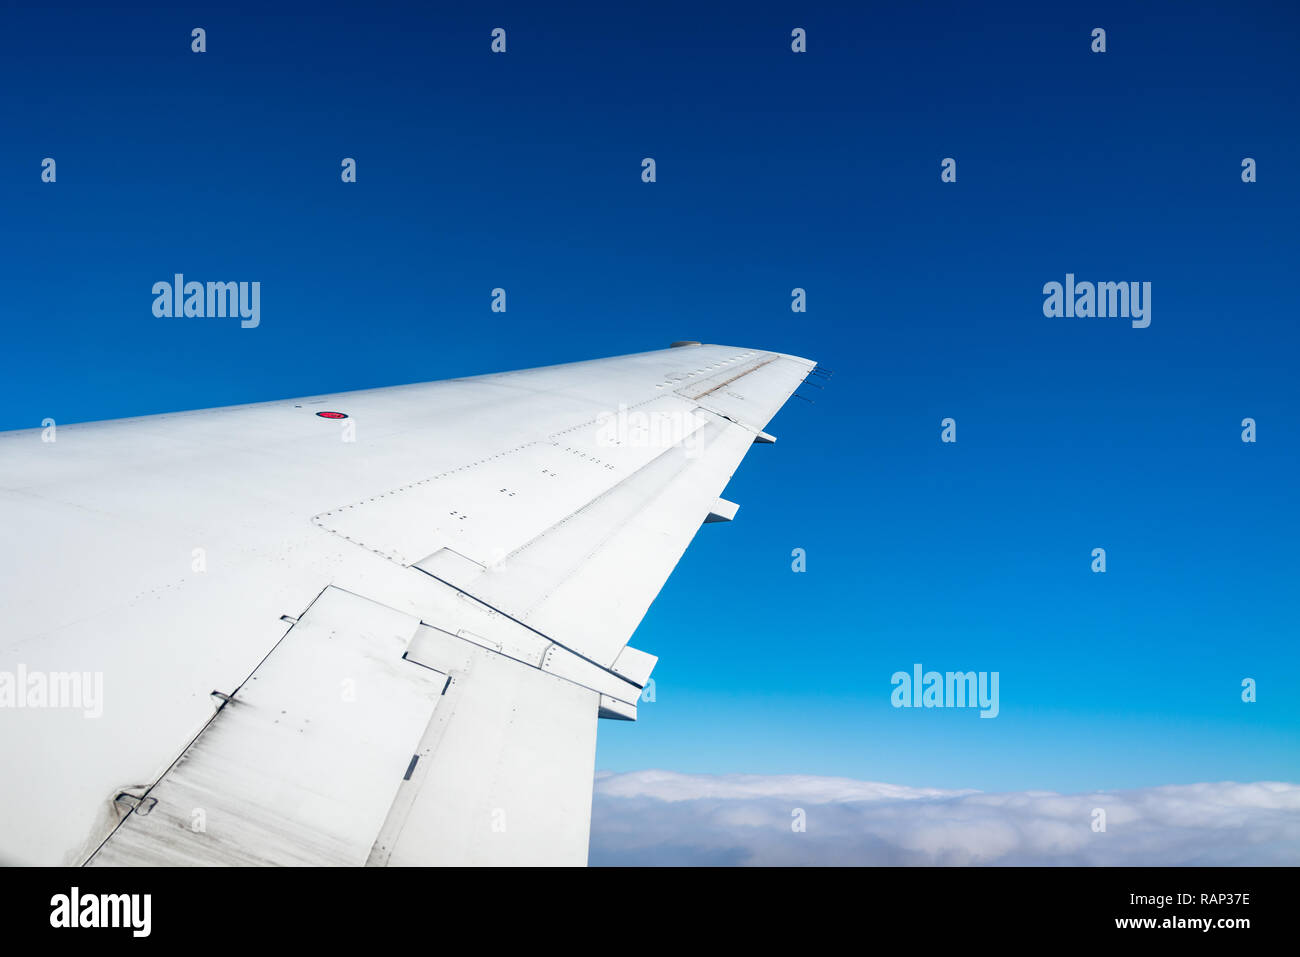 New York, USA,  29DEC2018 - The wing of an Embraer ERJ-135 twin-jet is seen against the sky as it departs from New York La Guardia airport.  Photo by  - Stock Image